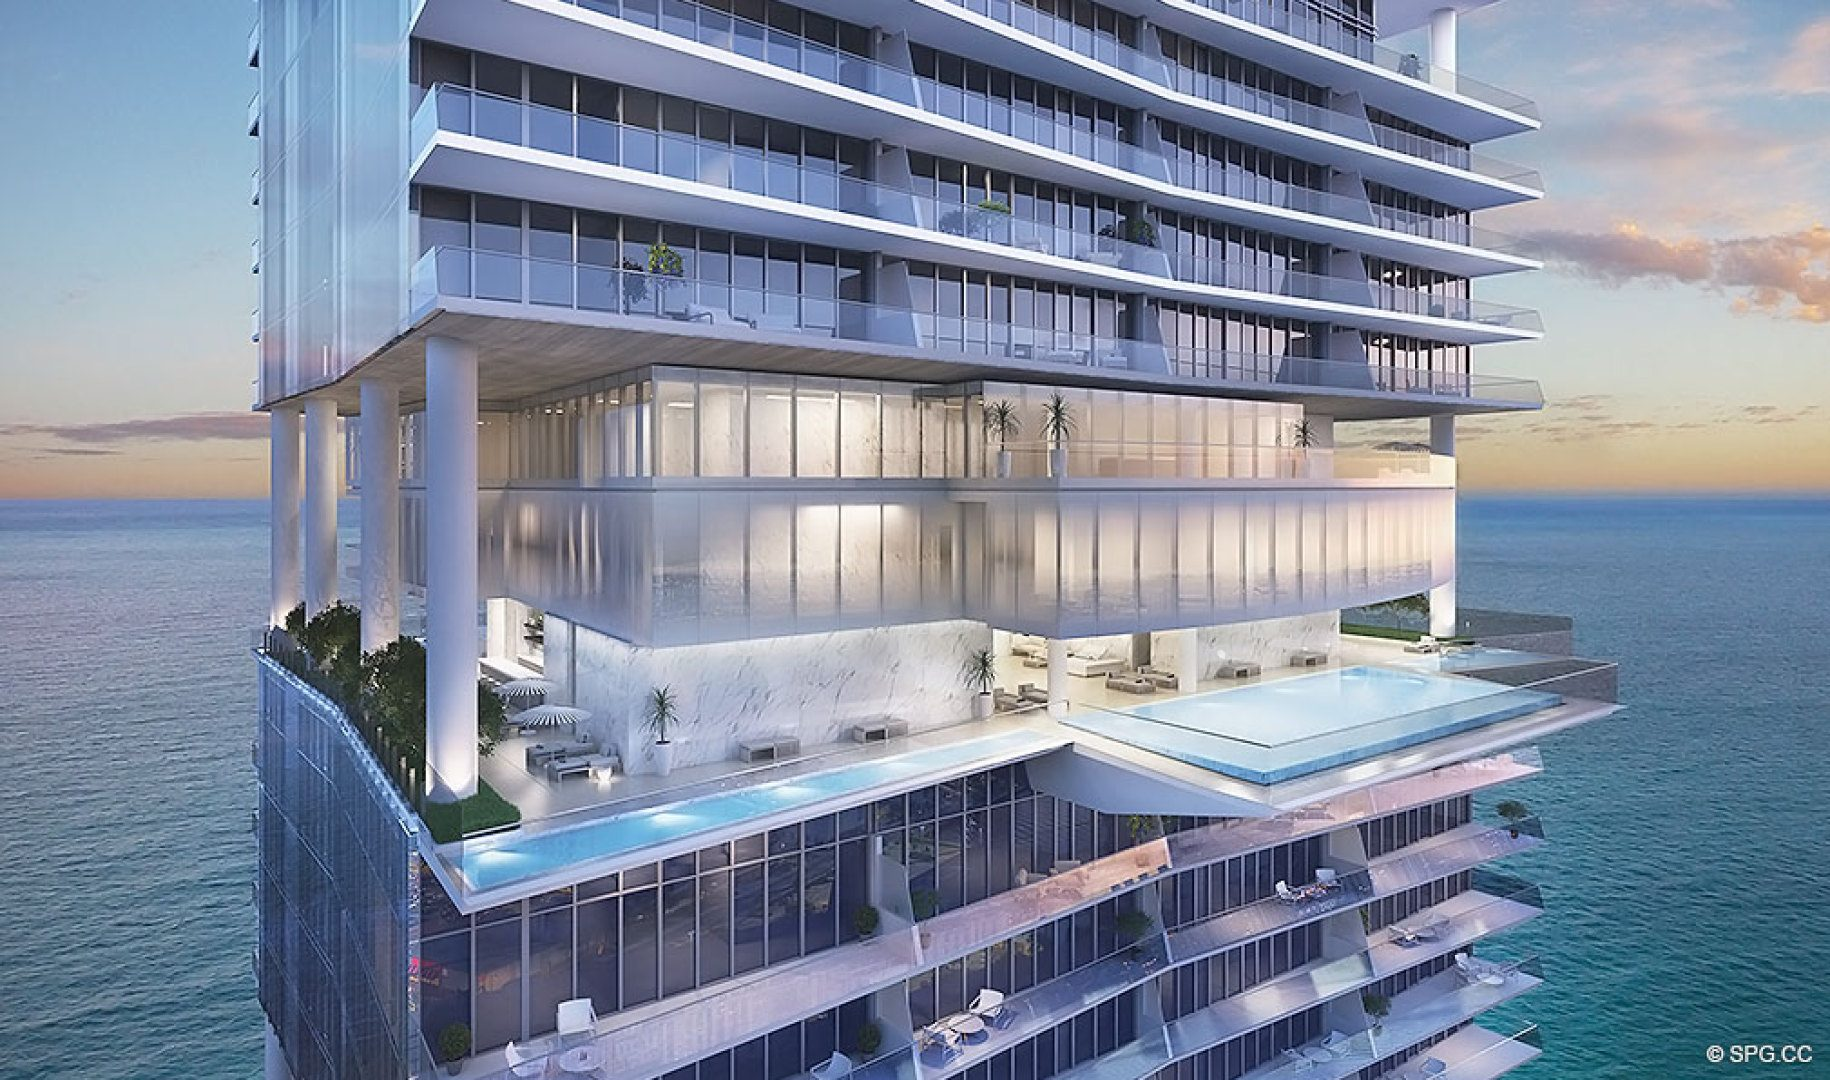 Terrace Pool at Turnberry Ocean Club, Luxury Oceanfront Condos Located at 18501 Collins Avenue, Sunny Isles Beach, Miami 33160